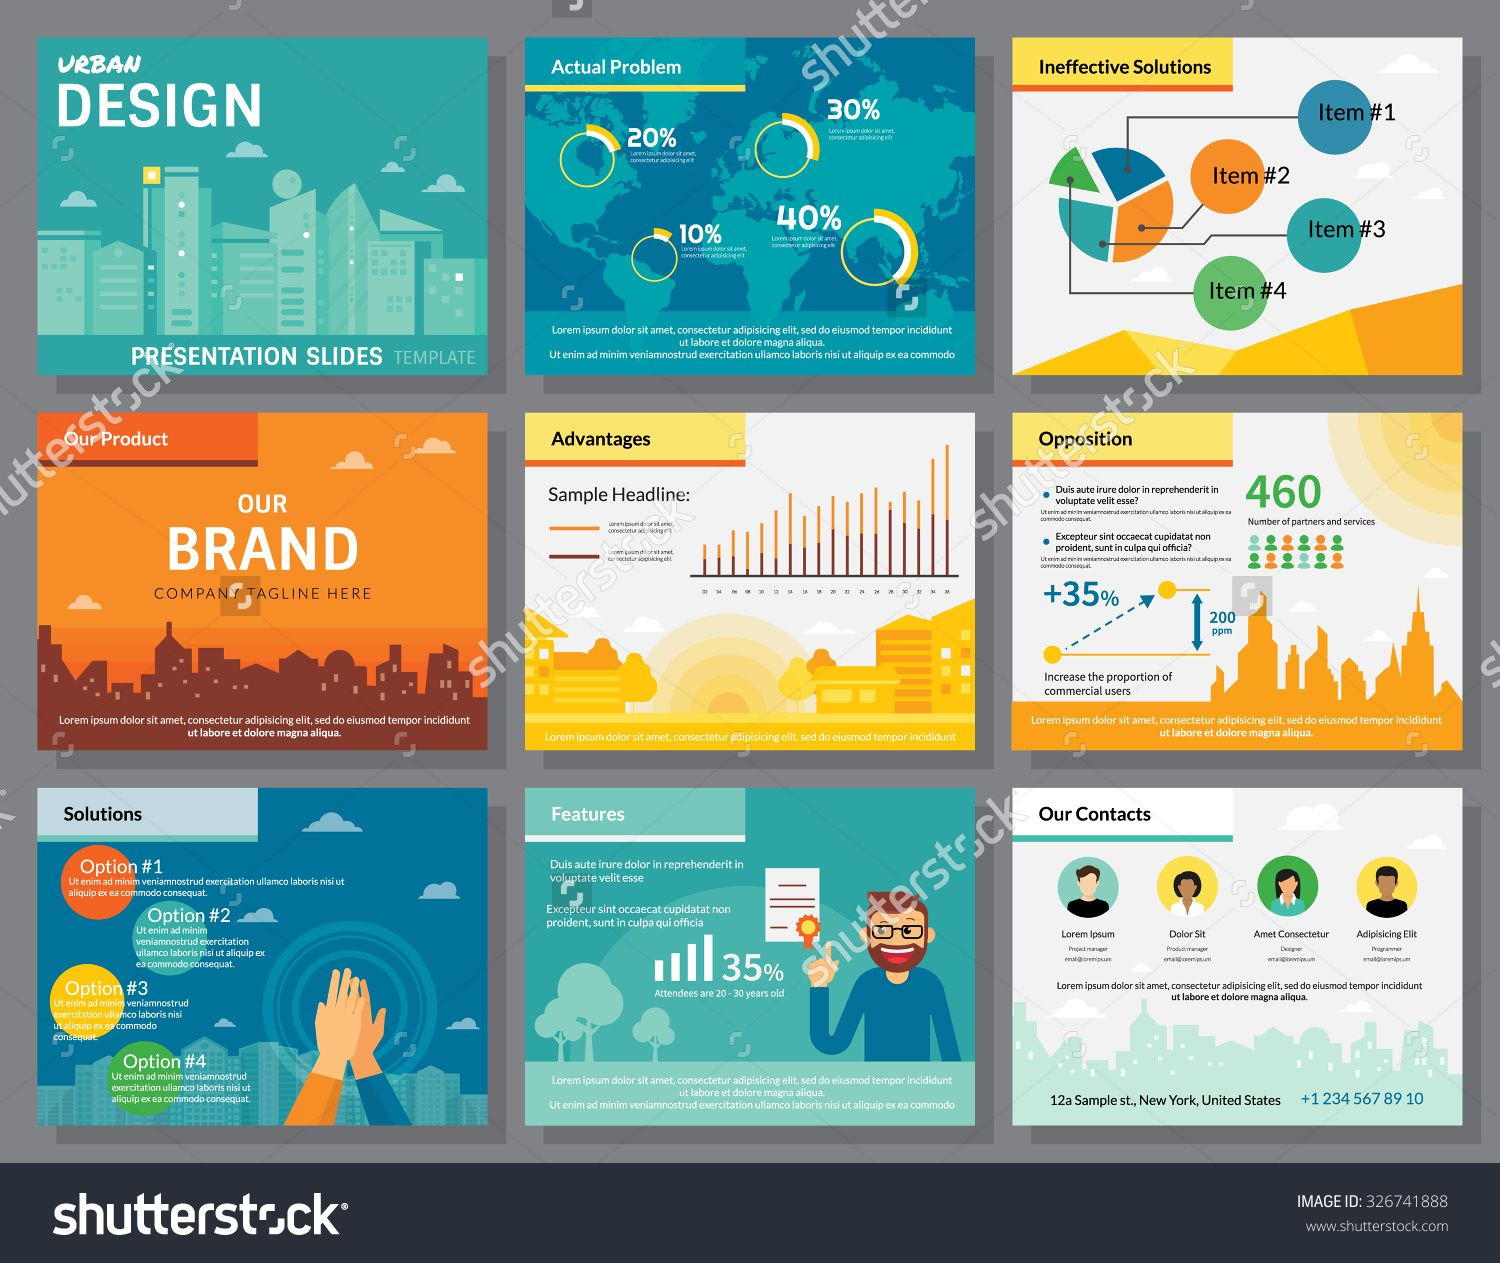 Urban design of infographics presentation slides template with flat urban design of infographics presentation slides template with flat illustrations of city buildings world map toneelgroepblik Choice Image